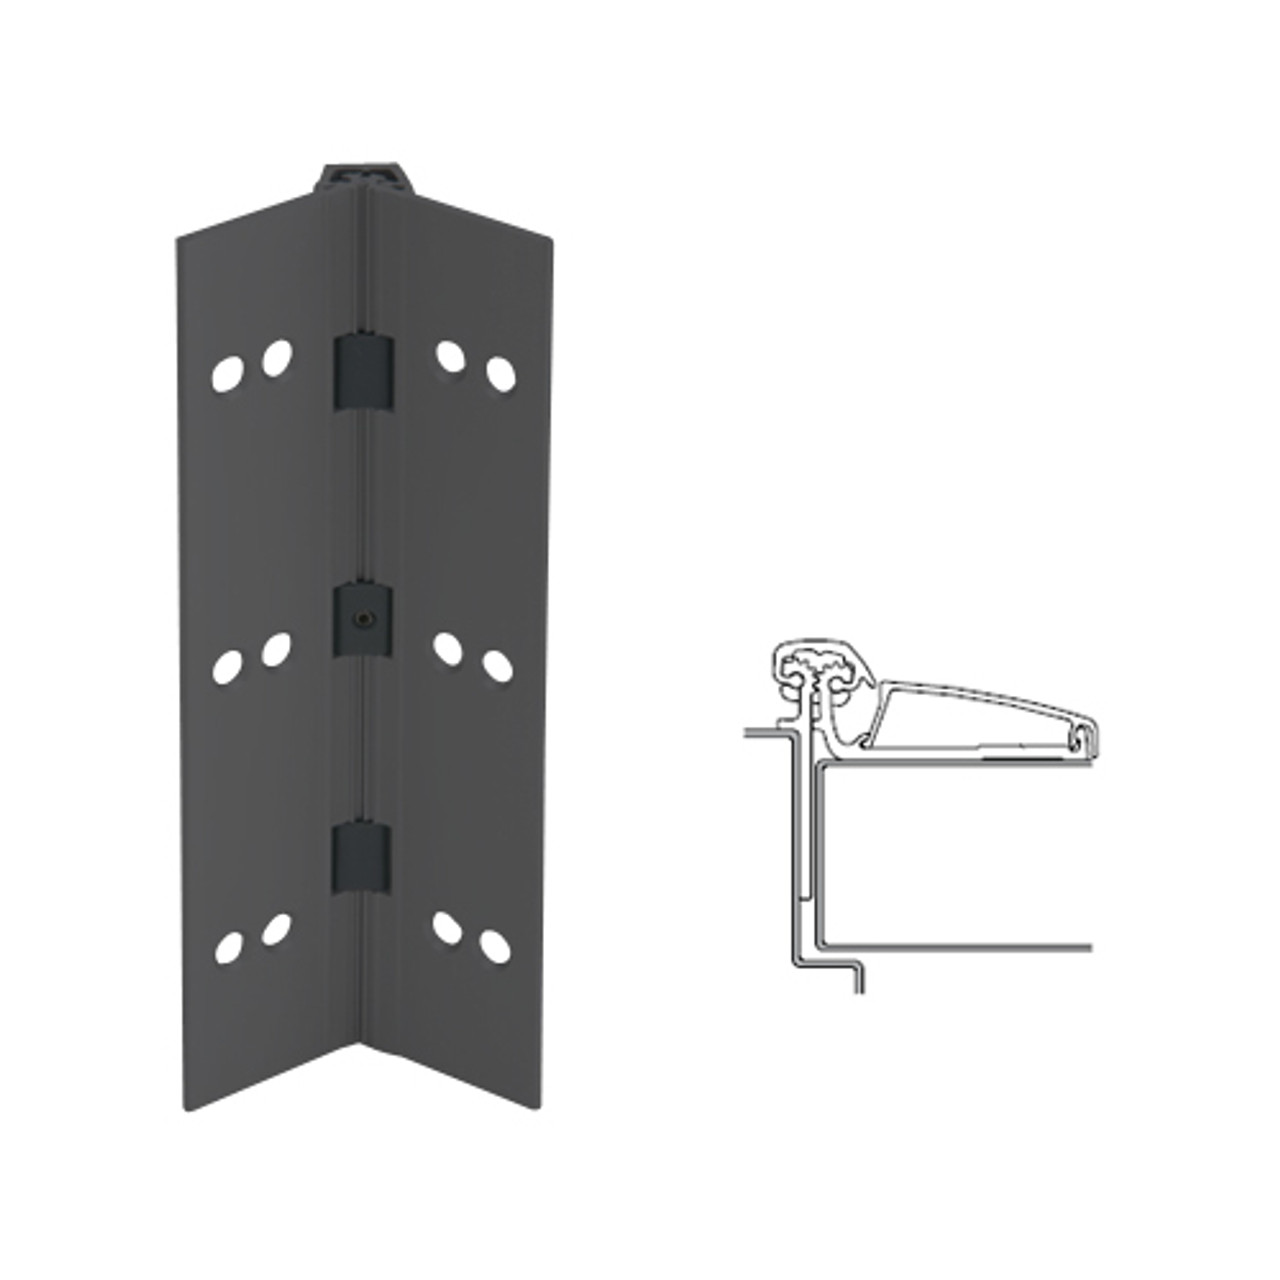 045XY-315AN-83-SECWDWD IVES Adjustable Half Surface Continuous Geared Hinges with Security Screws - Hex Pin Drive in Anodized Black